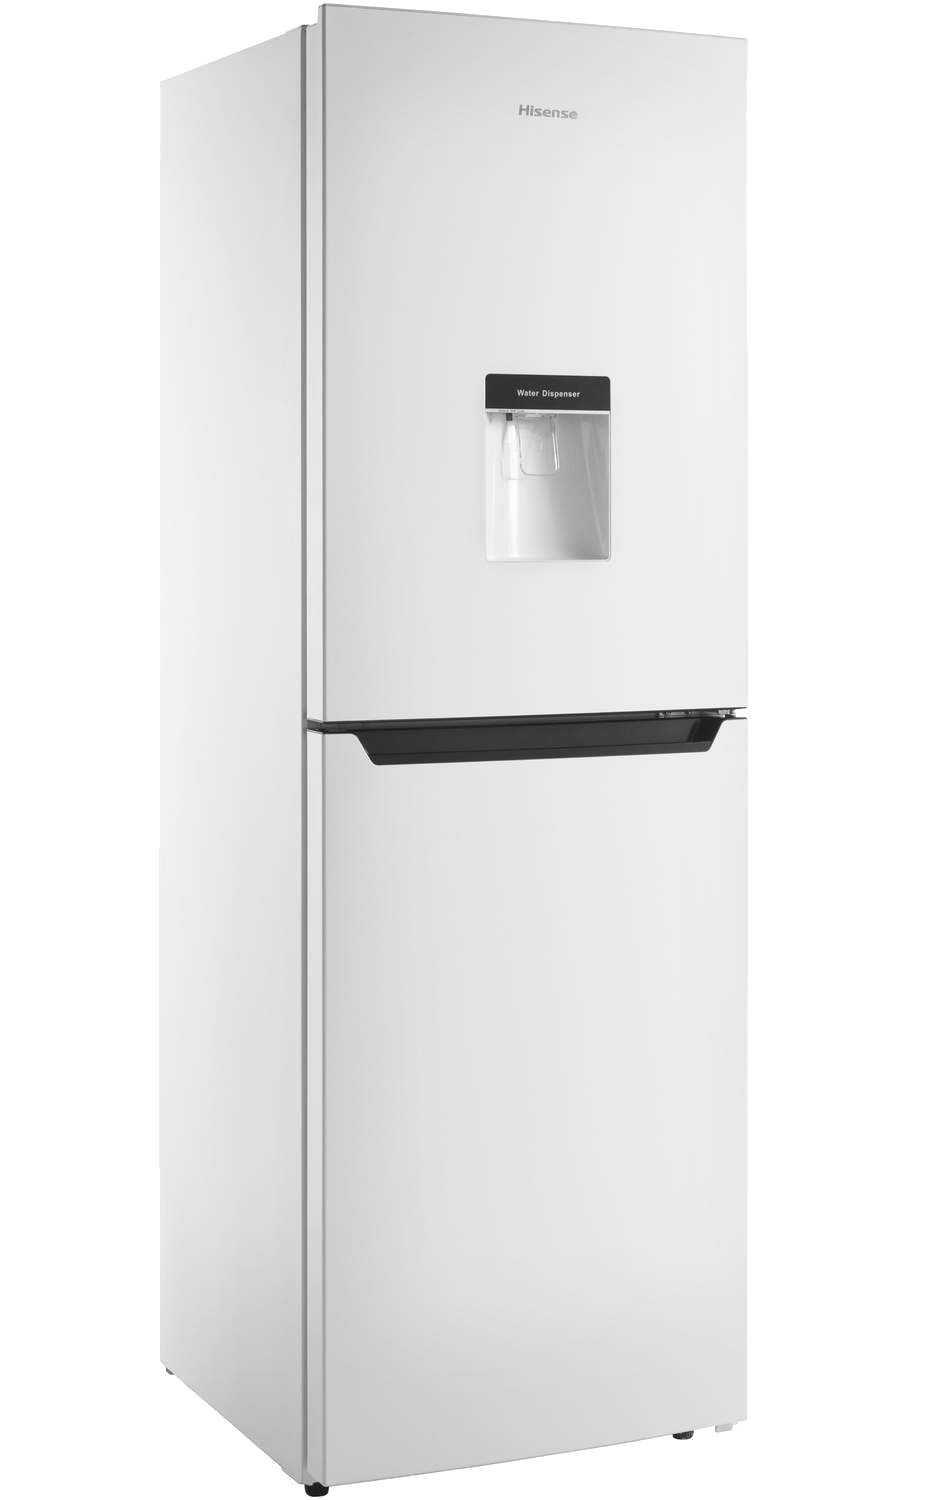 Hisense RB320D4WW1 Fridge Freezer